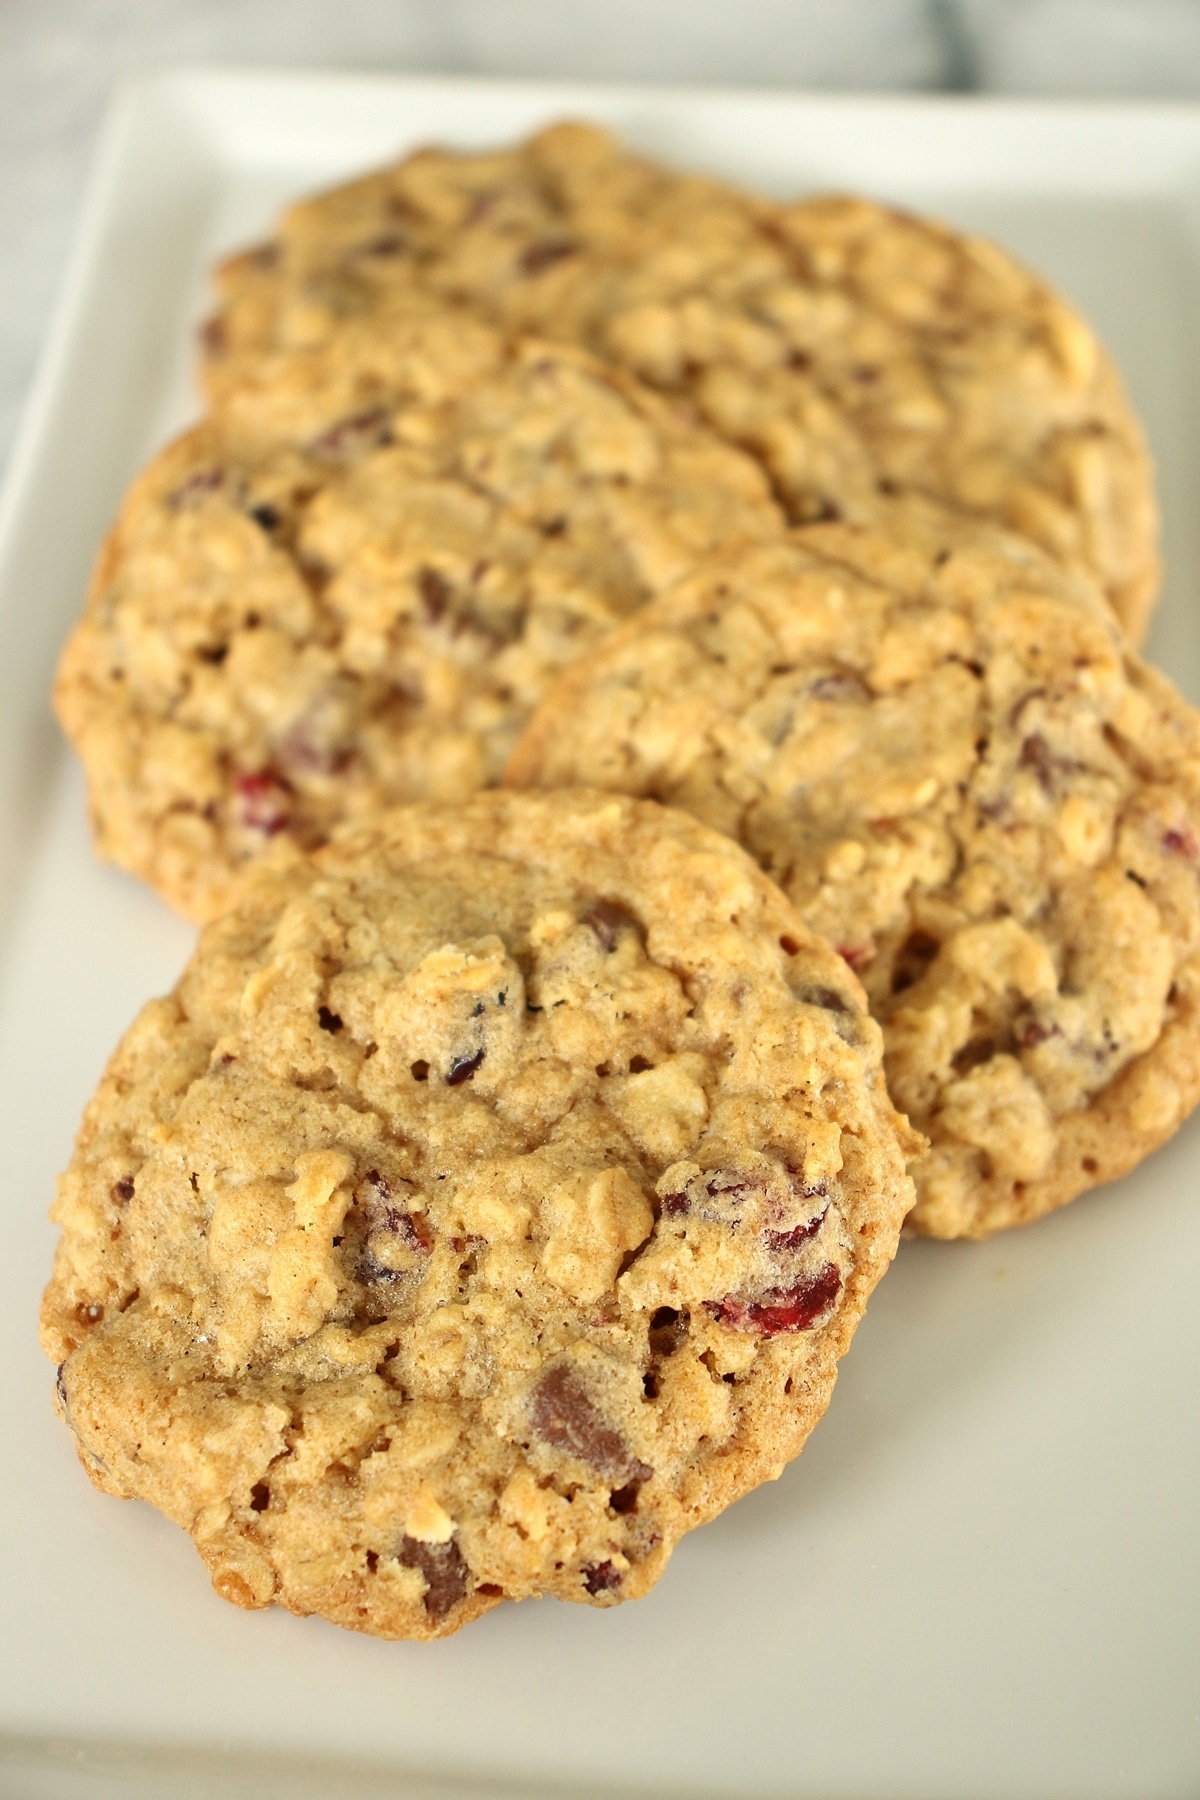 Closeup of 5 cookies on a rectangular white plate.